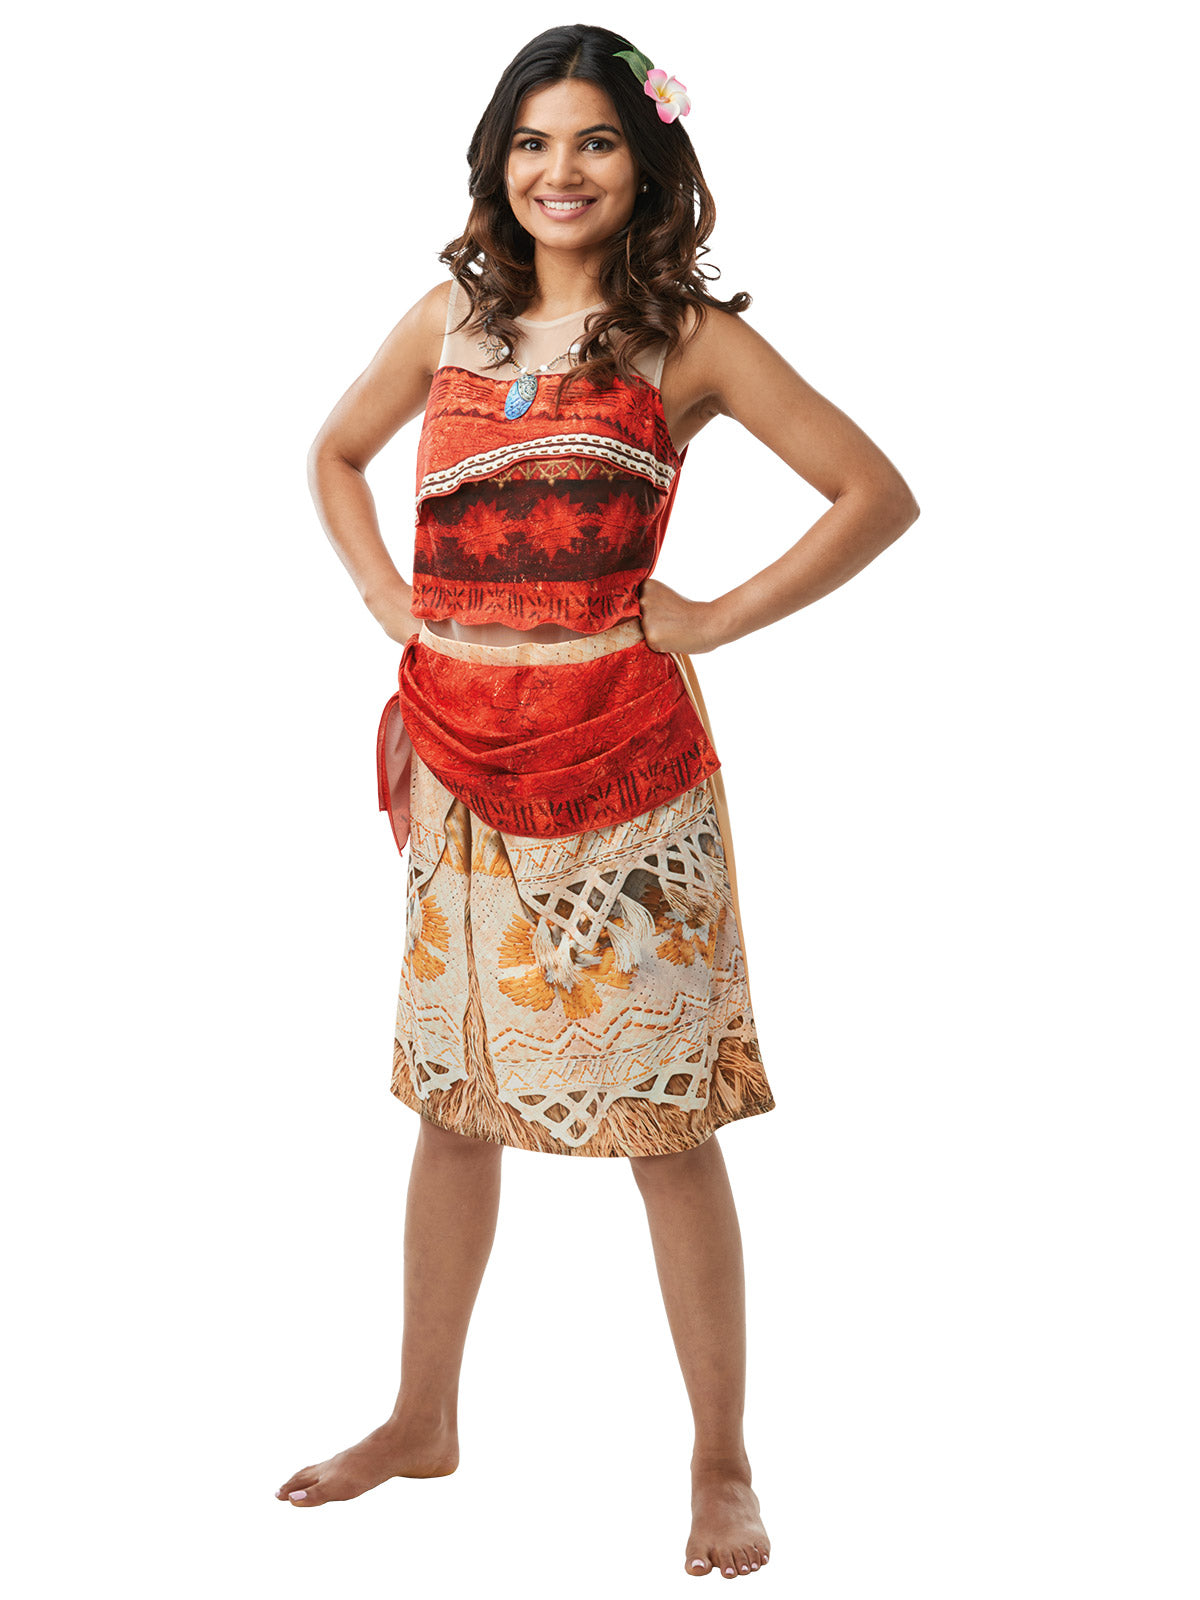 Moana Deluxe Costume - Buy Online Only